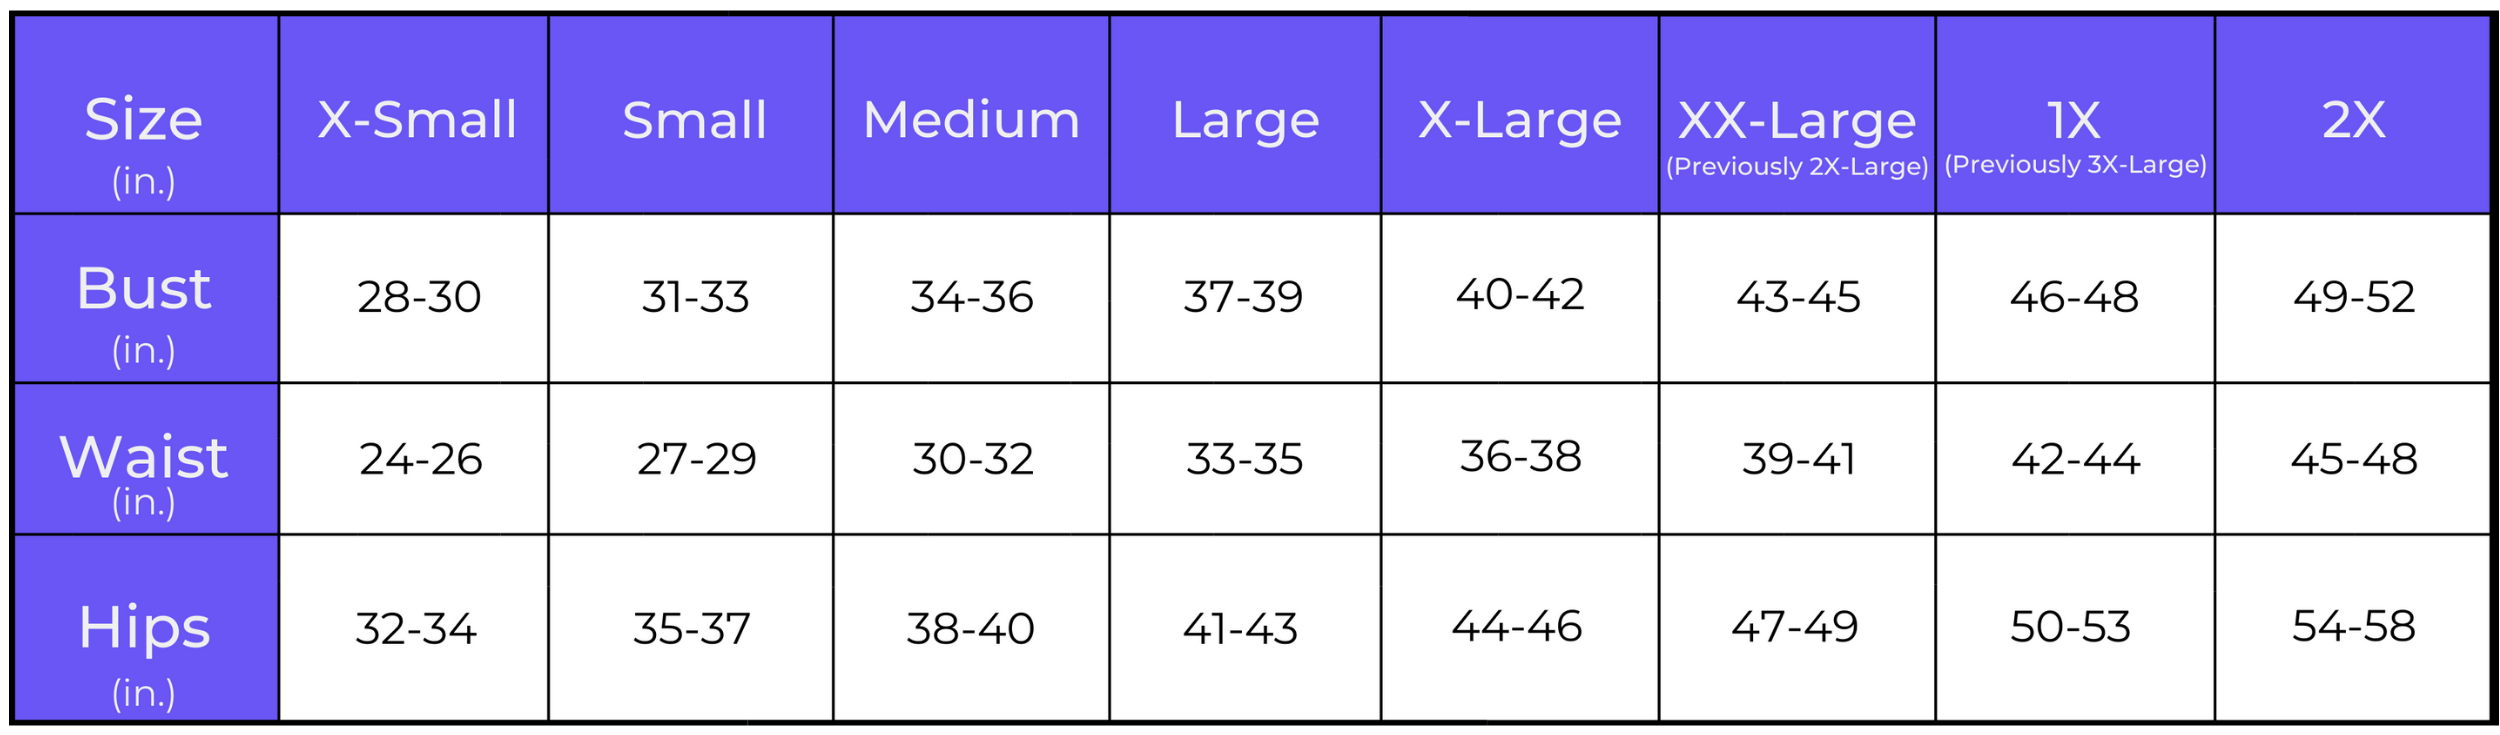 frw apparel size chart